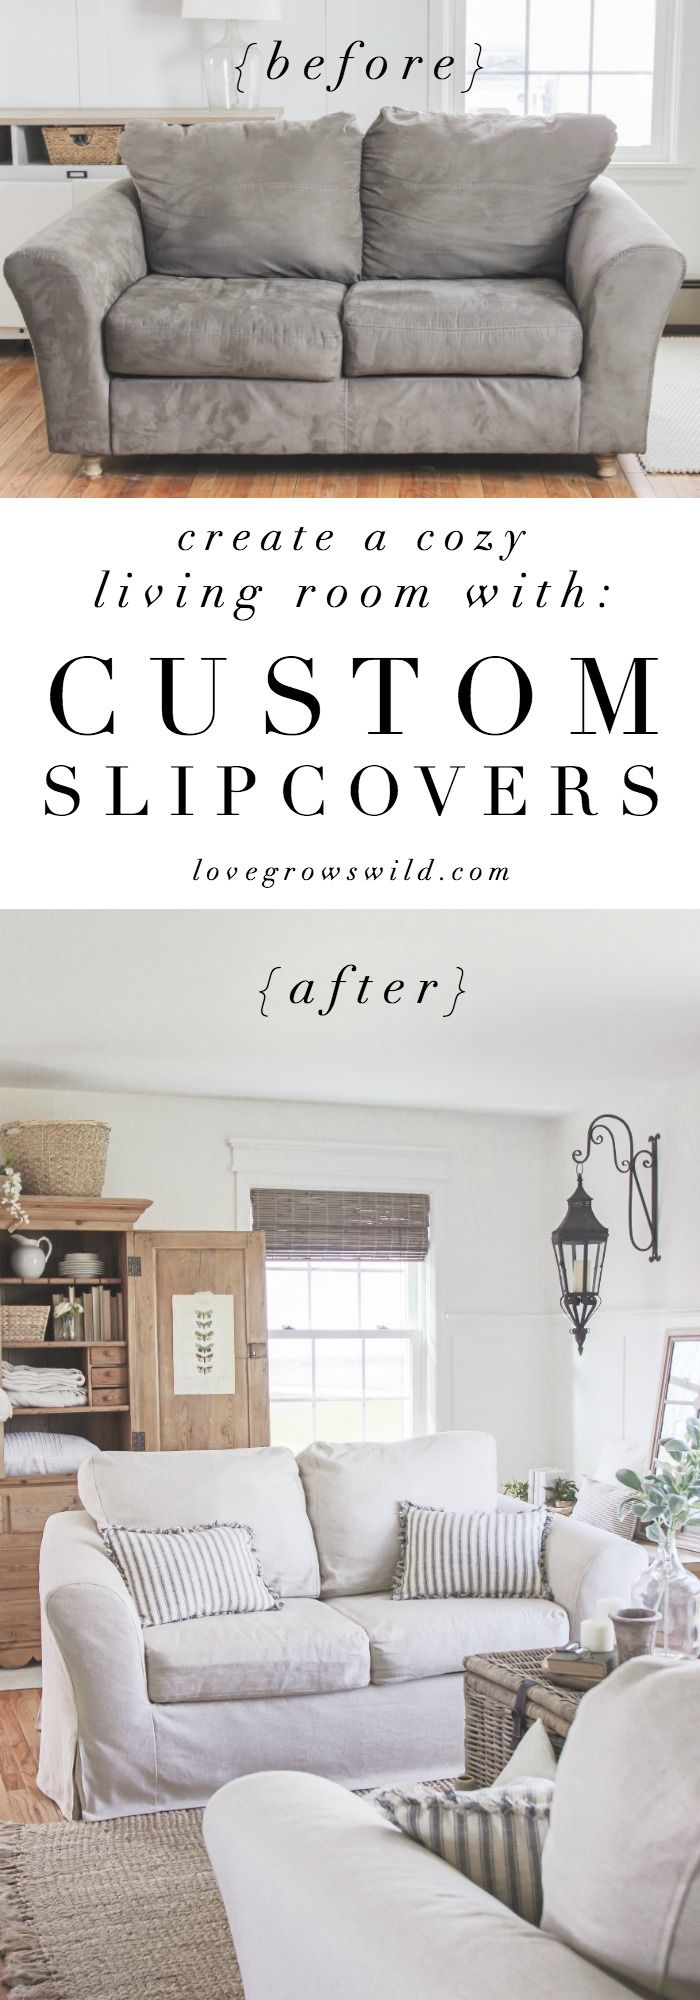 Living Room Slipcovers A Comfort Works Review Blogger